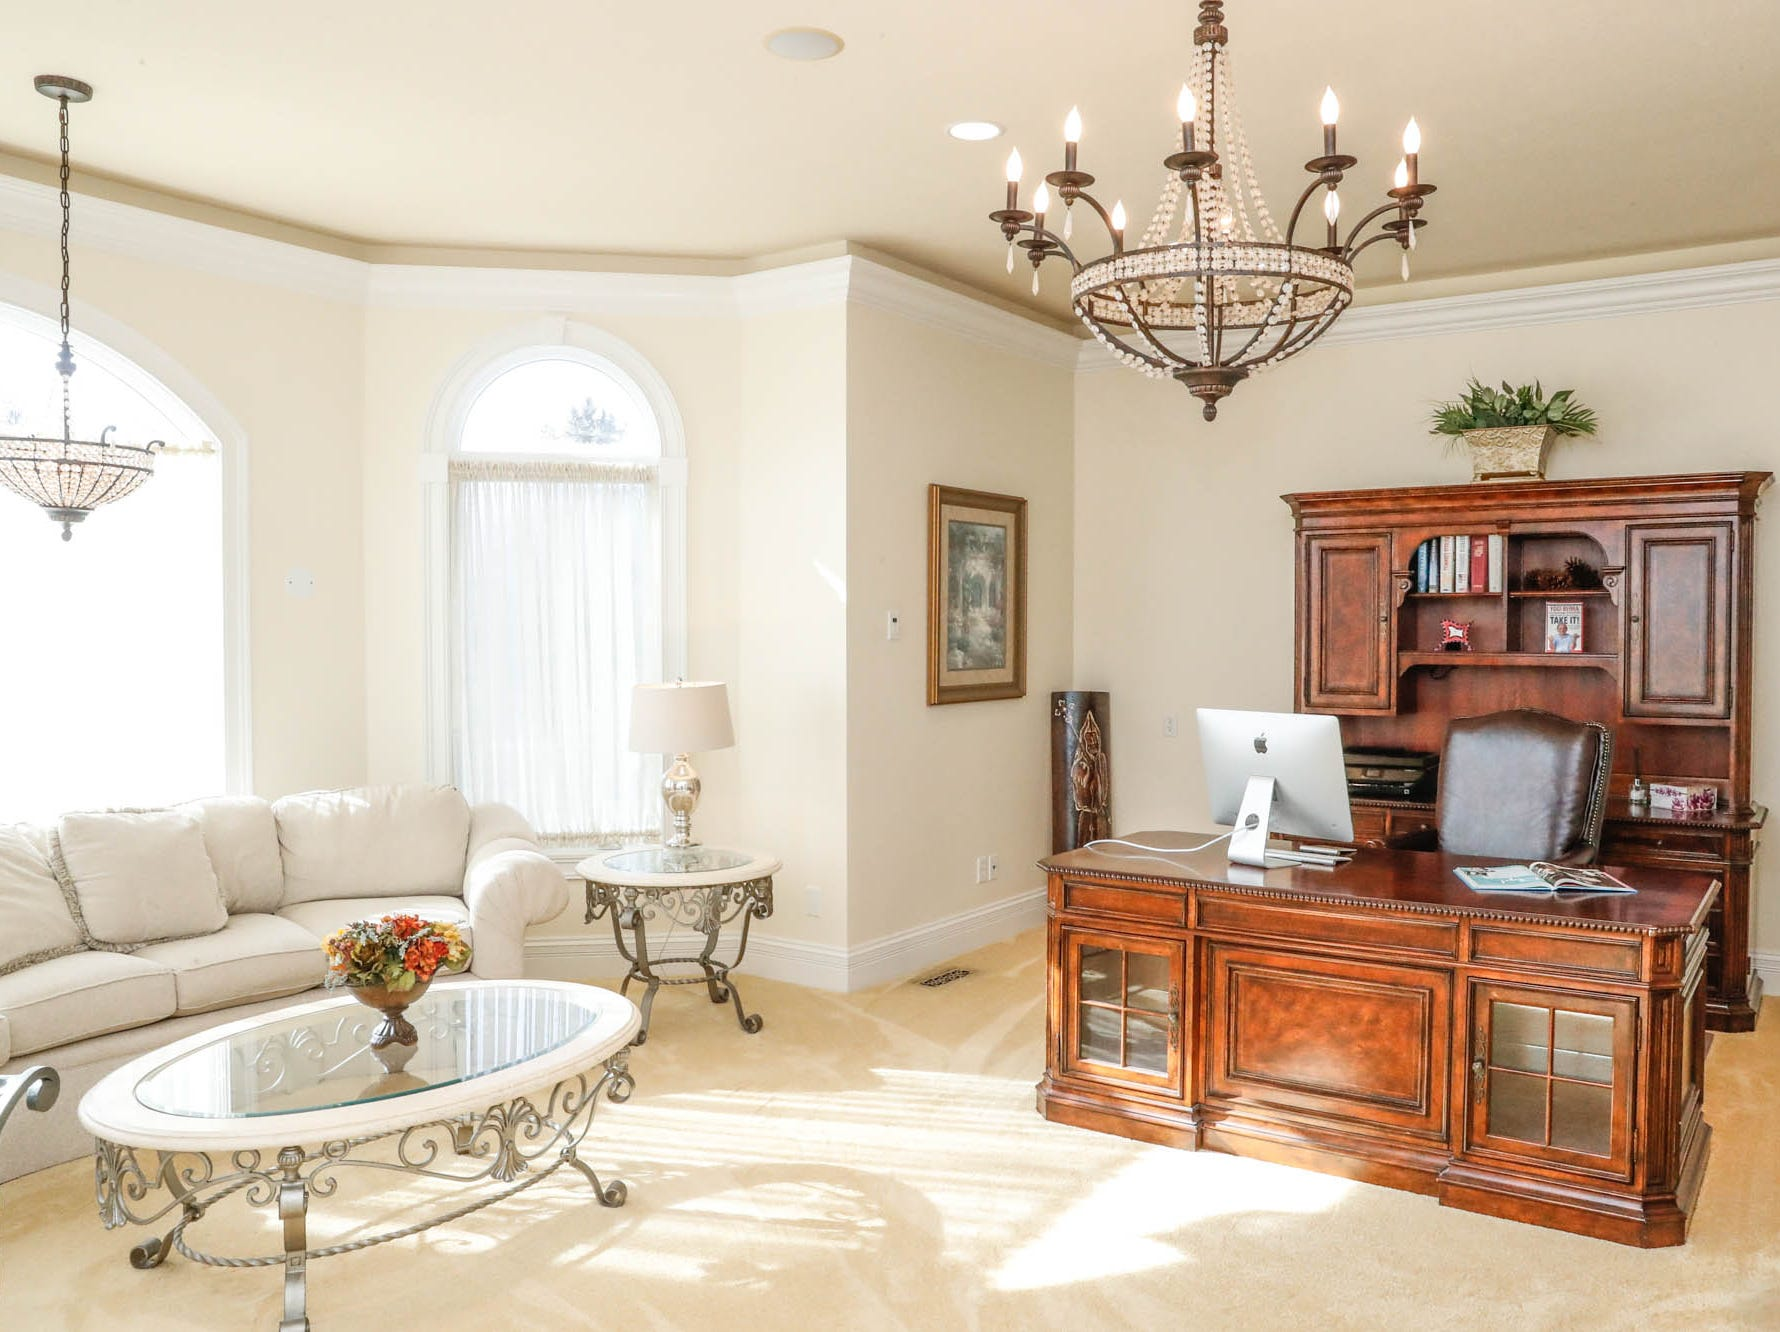 A bright study/home office offers a homeowner plenty of room to work at a Greenwood home up for sale at 1216 Stone Ridge Court, Greenwood, Ind. on Wednesday, Jan. 30, 2019. The home features 8,234 square feet, four bedrooms, two master suites, a 10 car garage, and an exercise room.